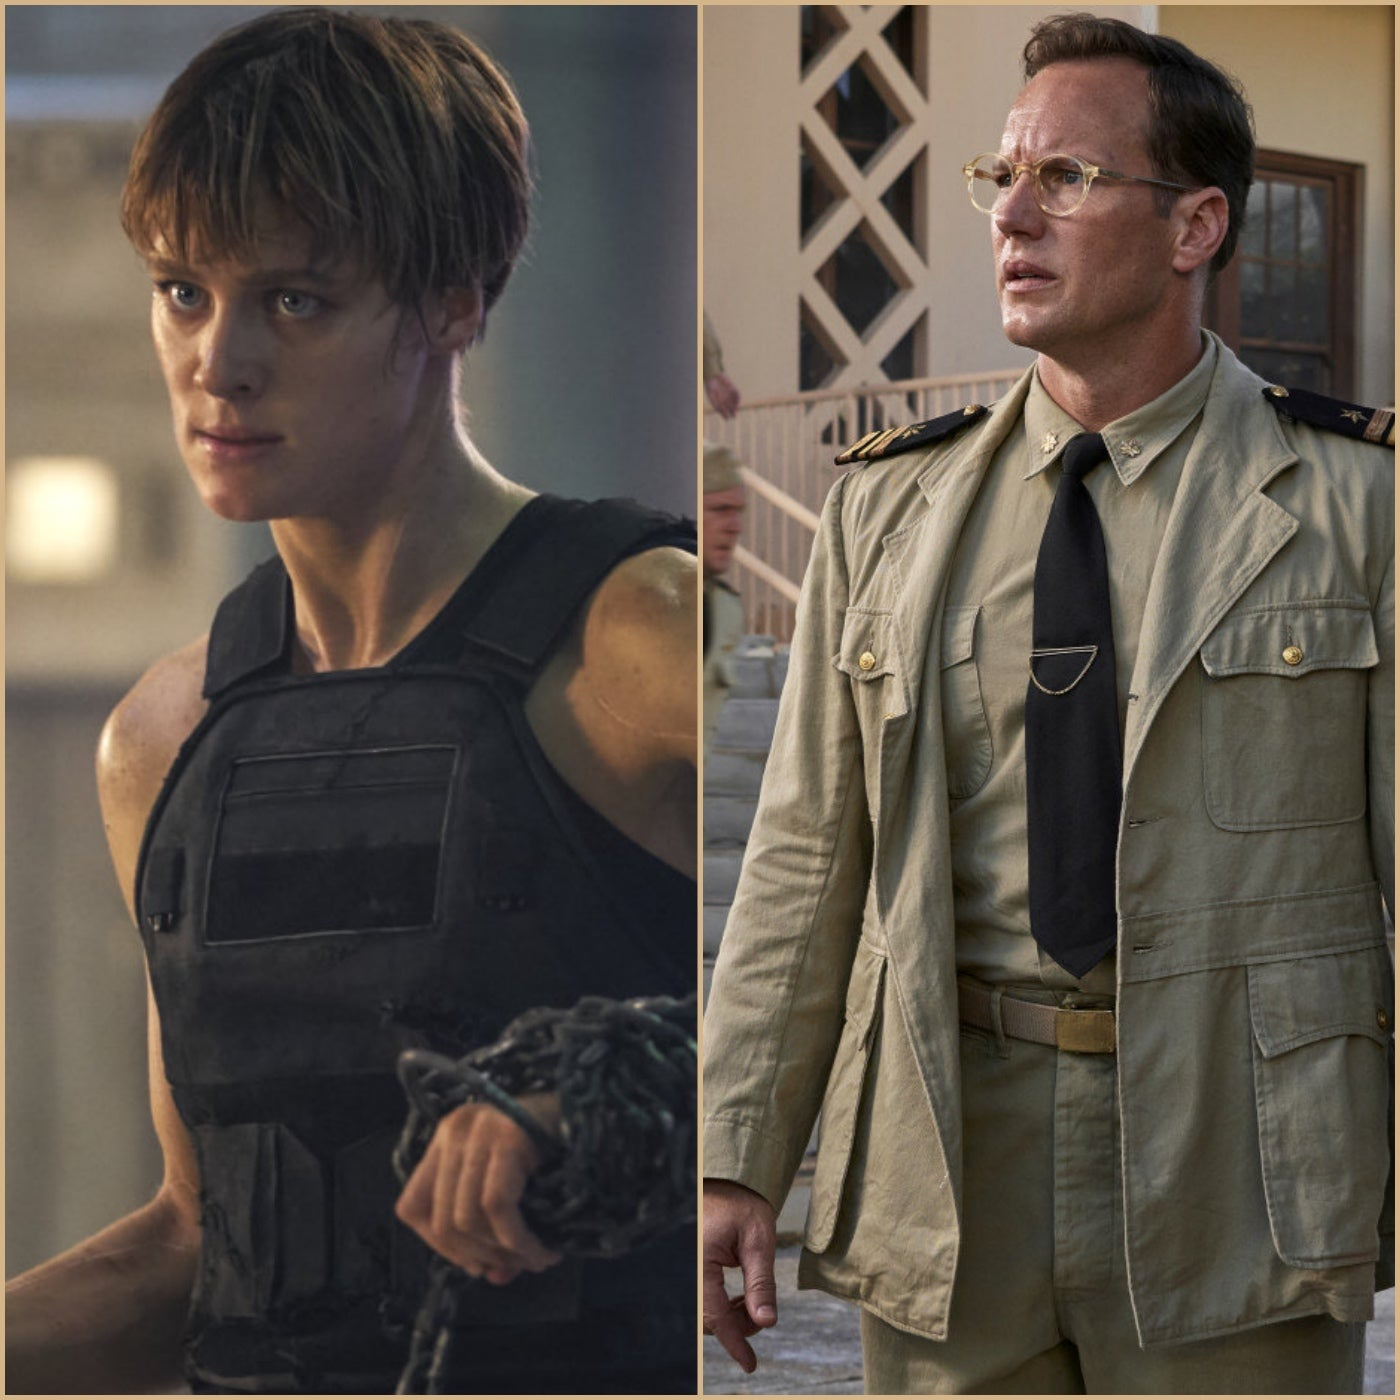 """Scenes from """"Terminator: Dark Fate"""" and """"Midway"""", 2019"""